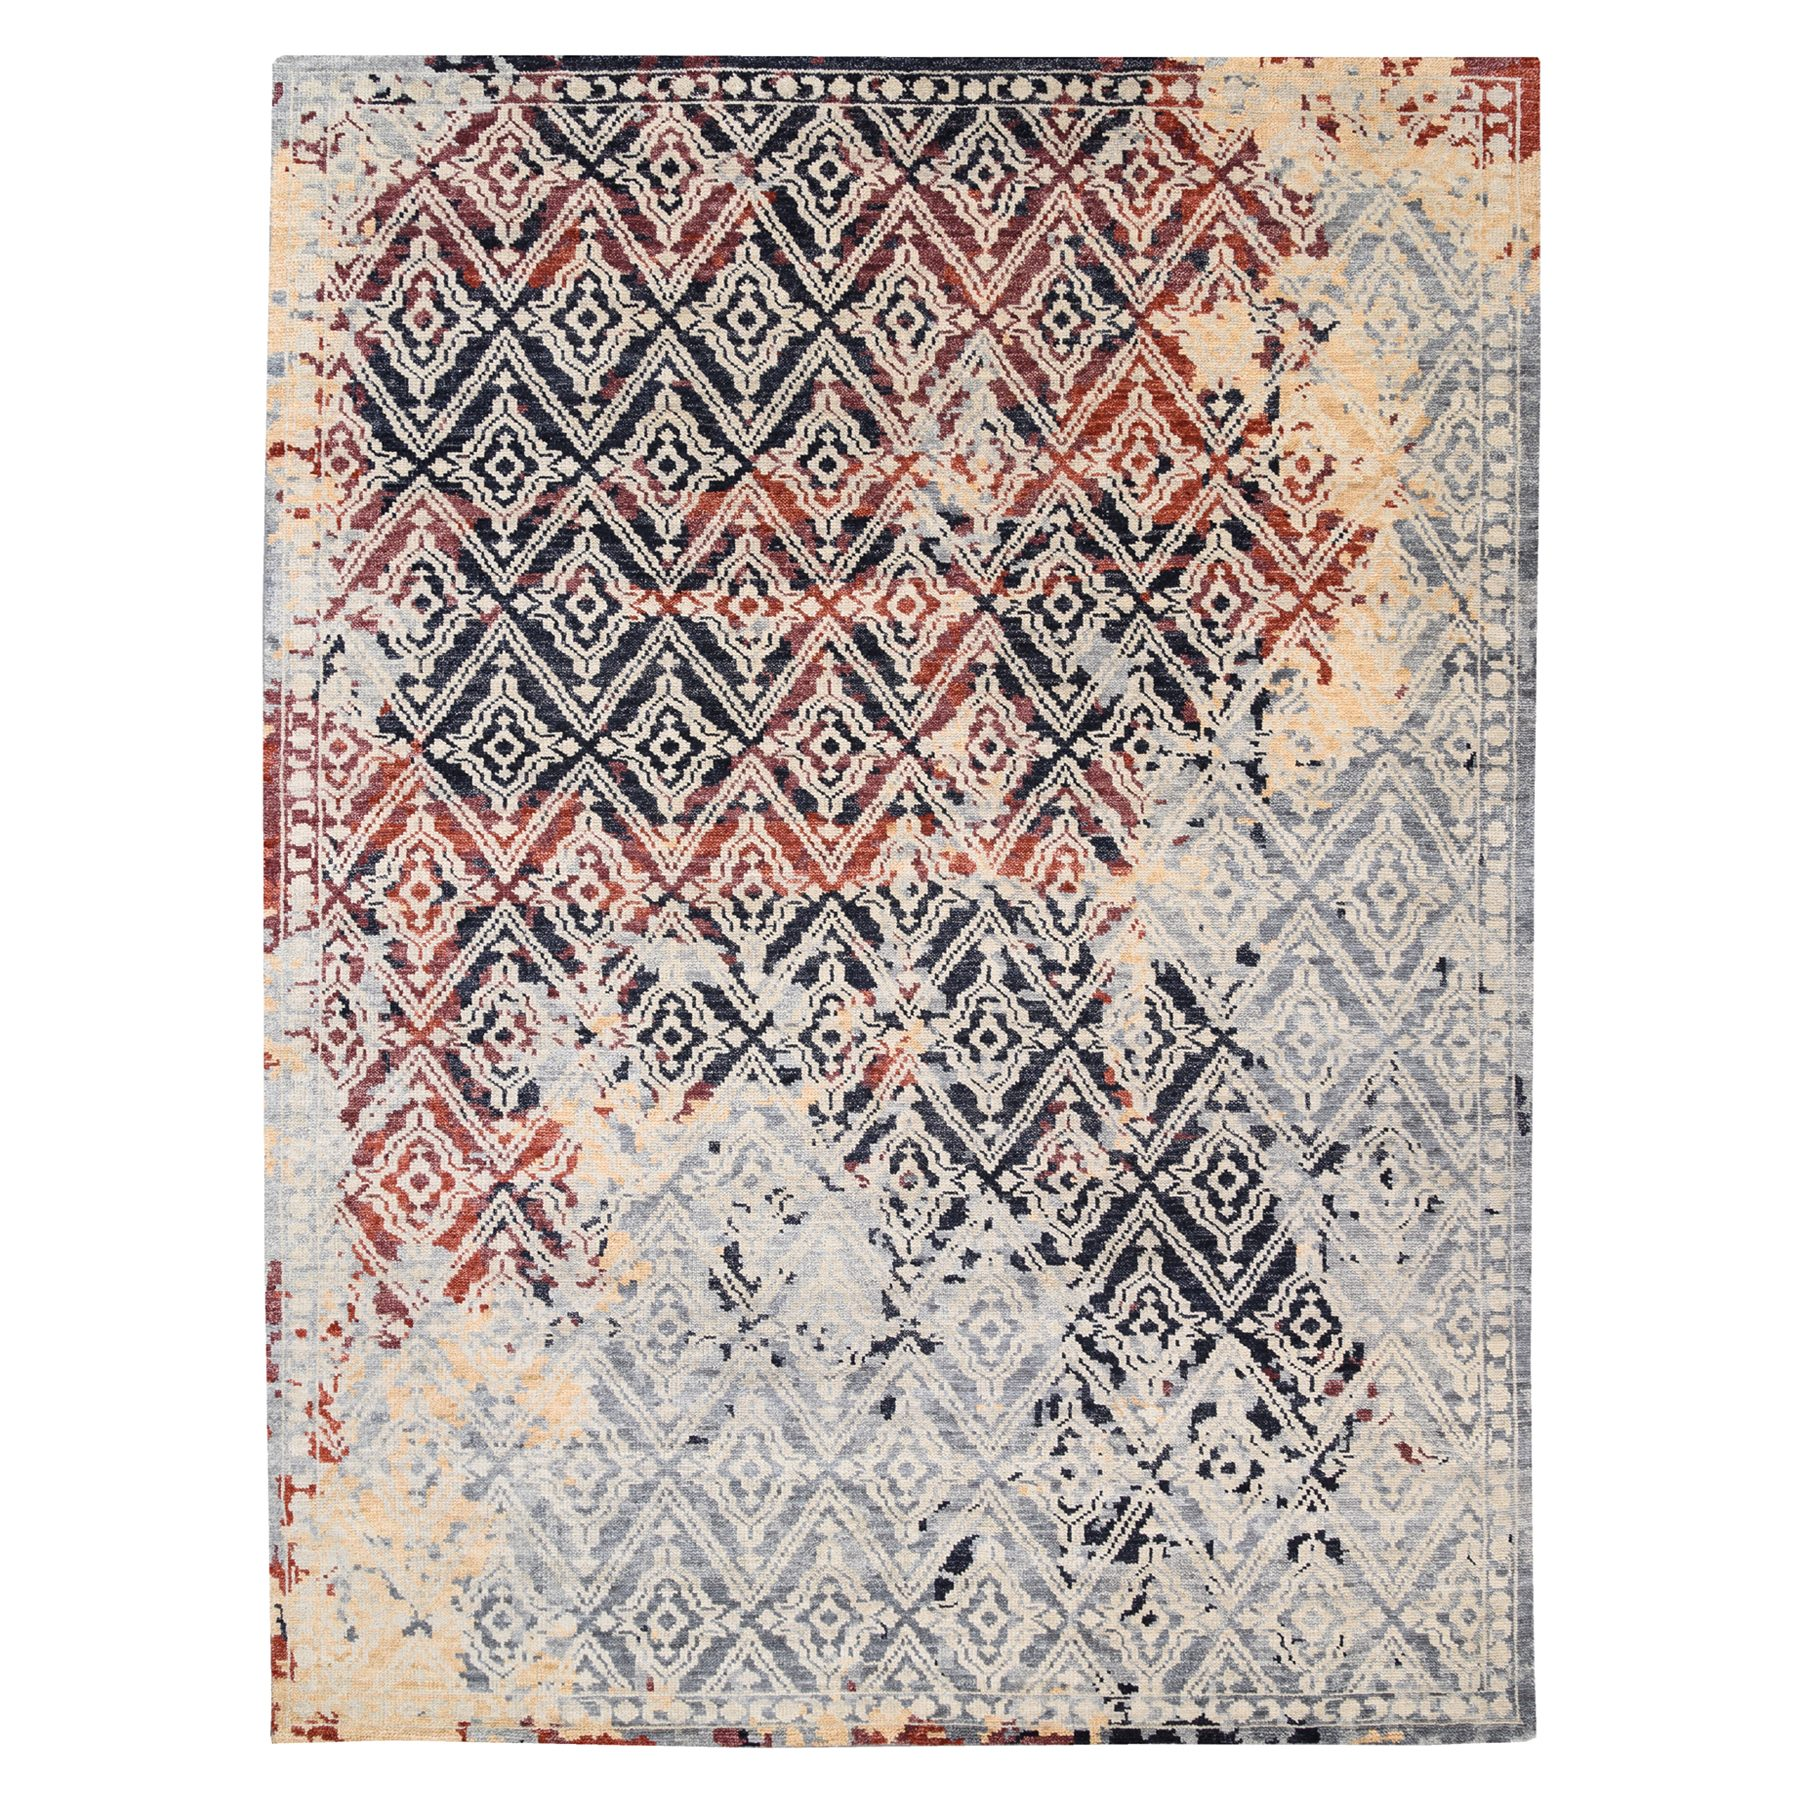 Nomadic And Village Collection Hand Knotted Grey Rug No: 1124404